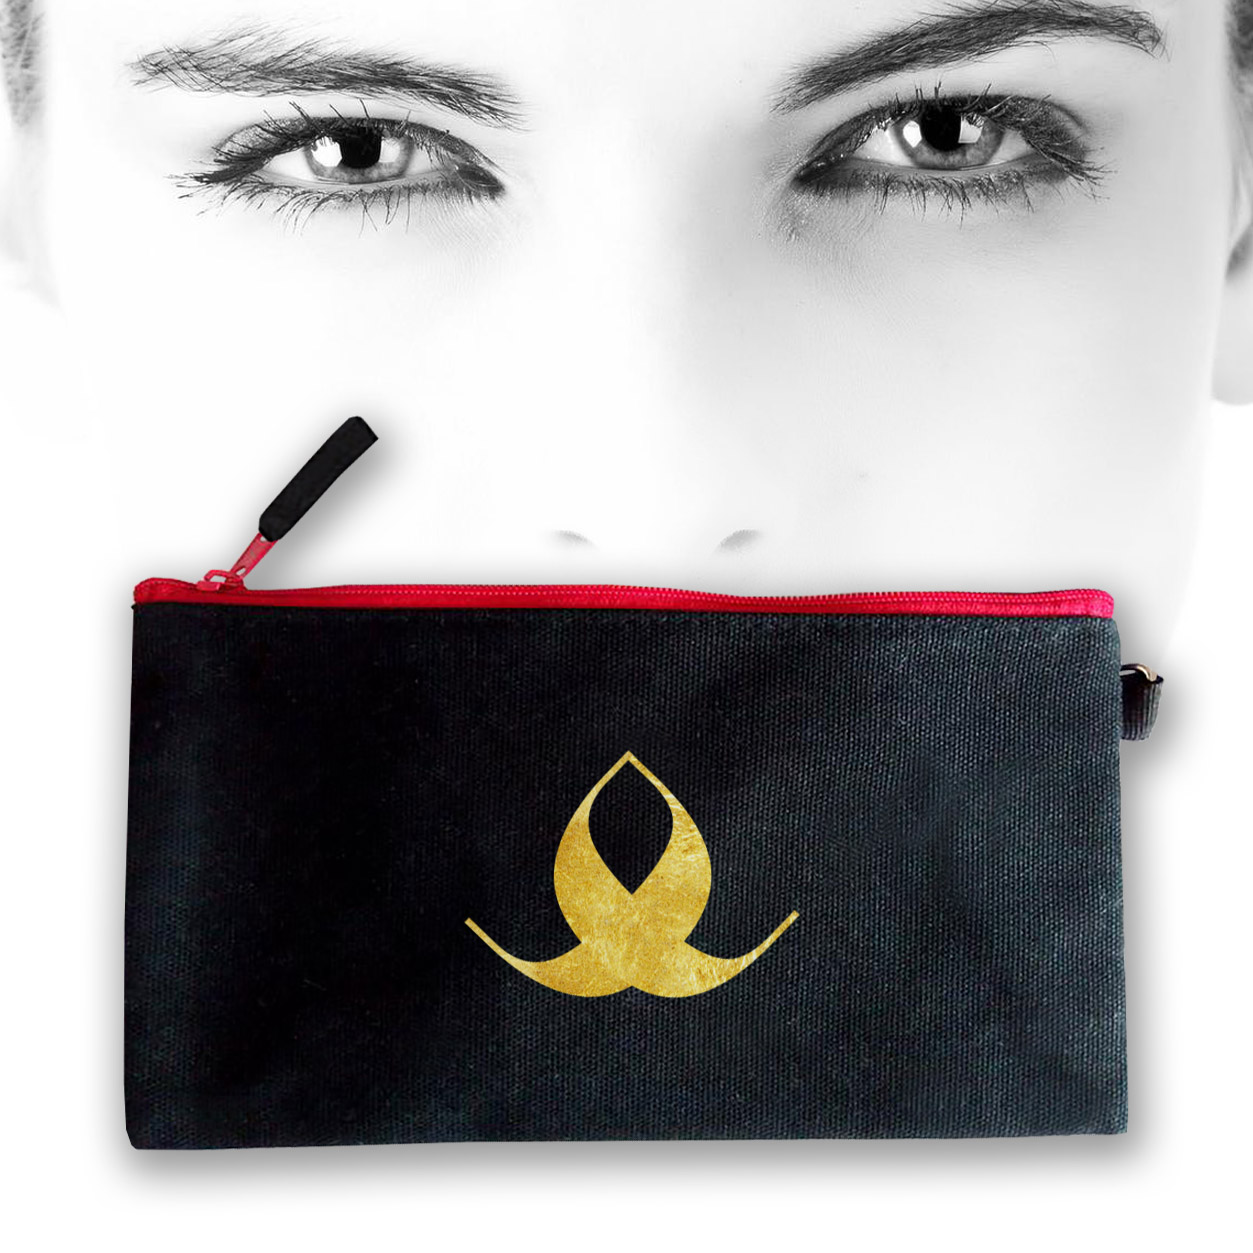 Black cosmetic bag with gold logo